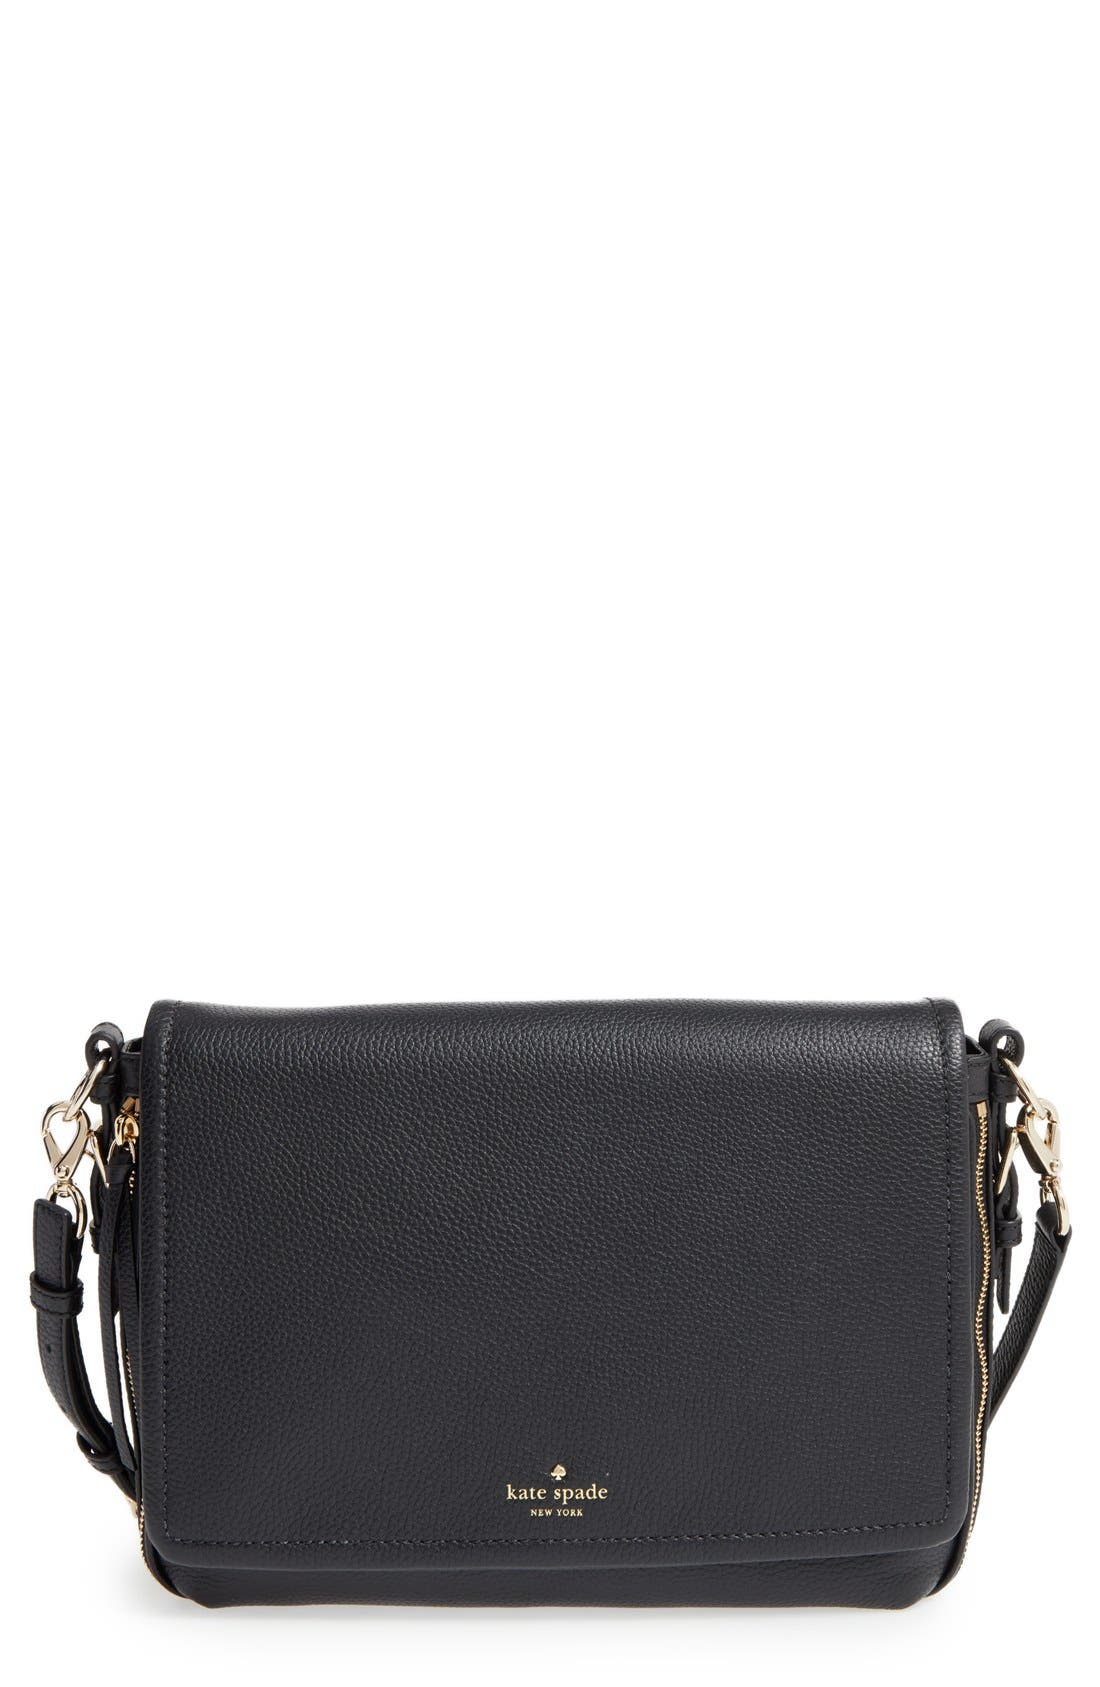 Alternate Image 1 Selected - kate spade new york cobble hill - mayra leather crossbody bag